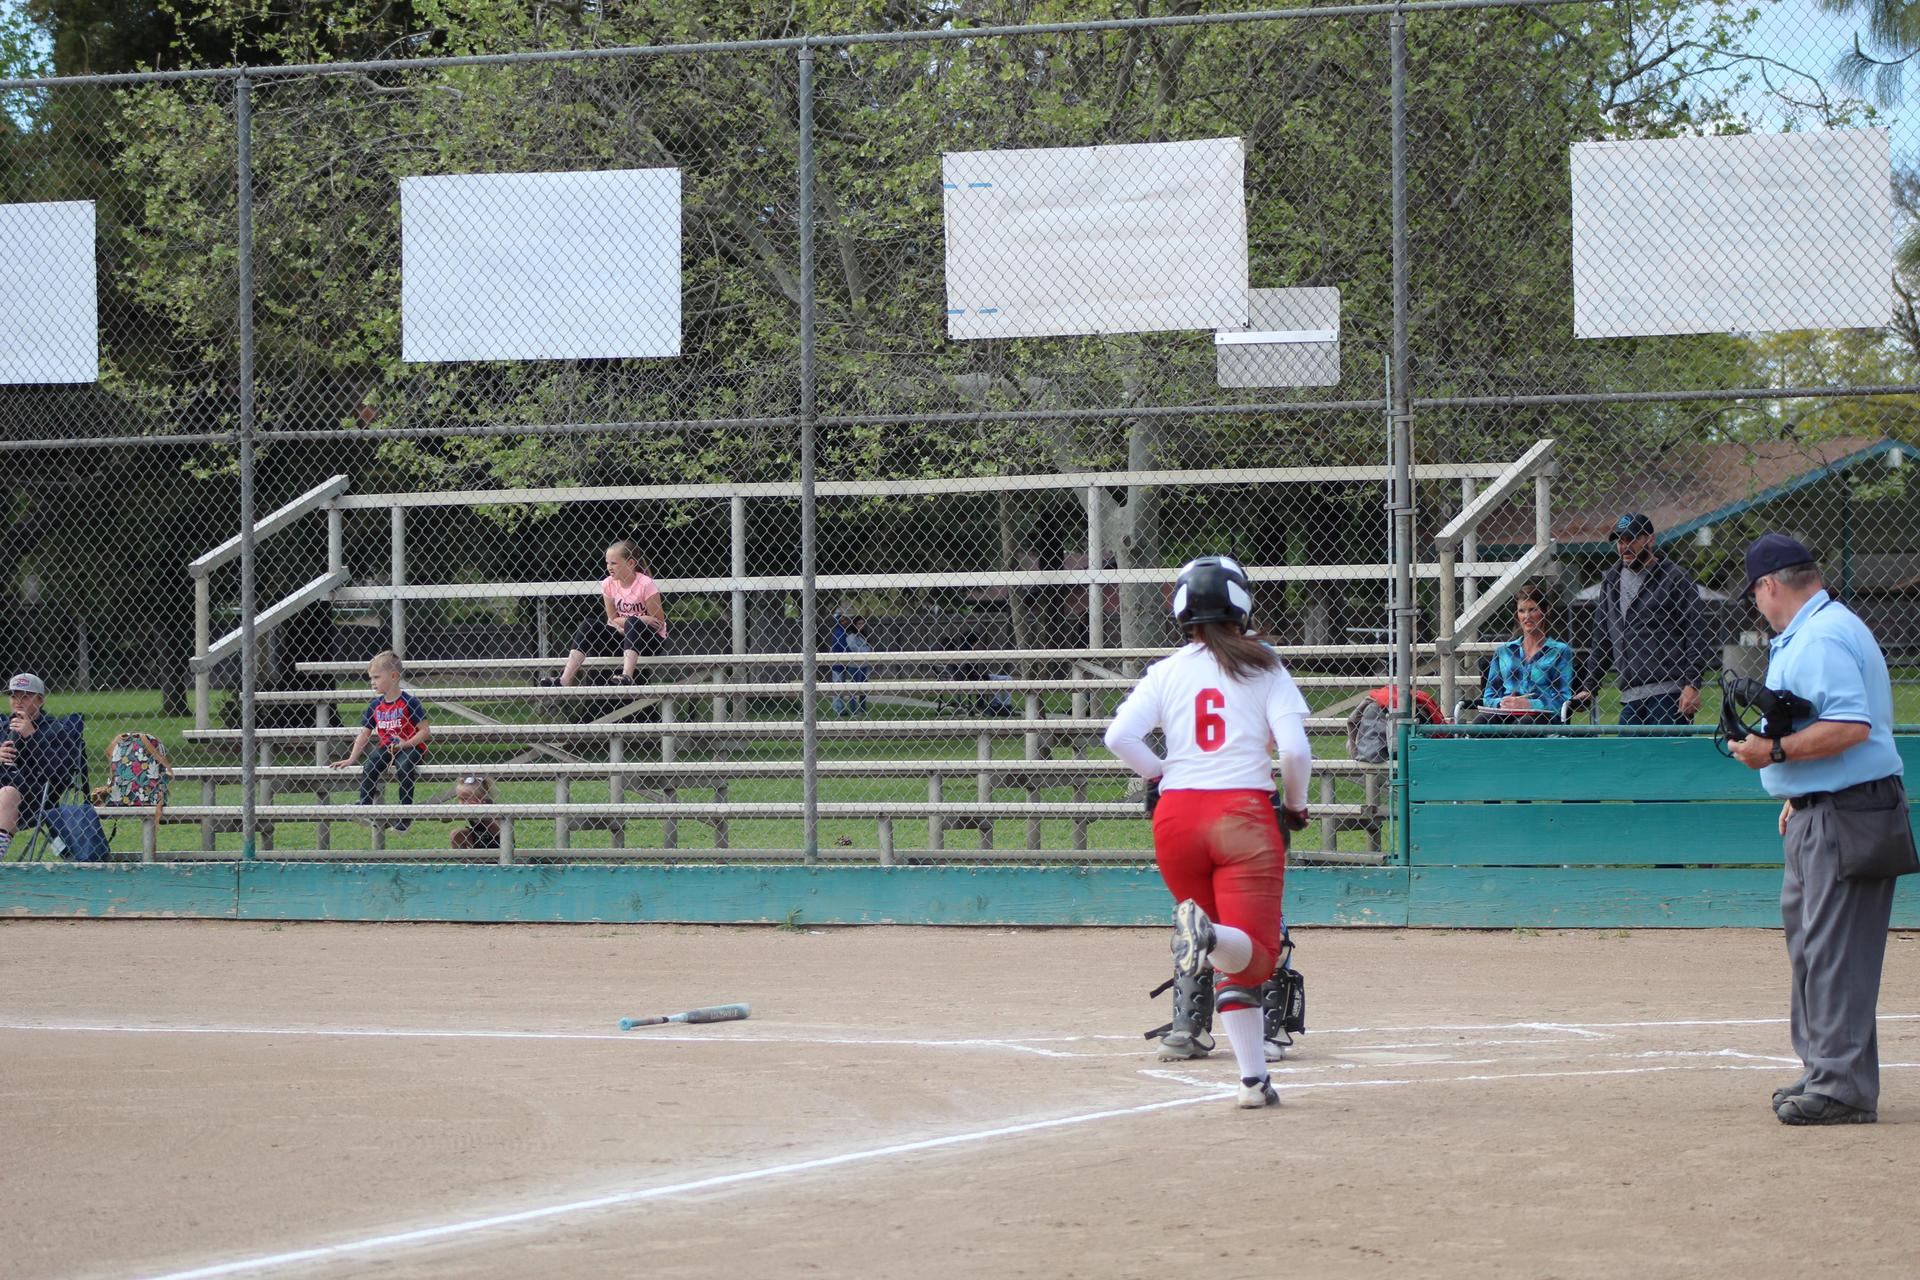 Girls playing softball against Yosemite